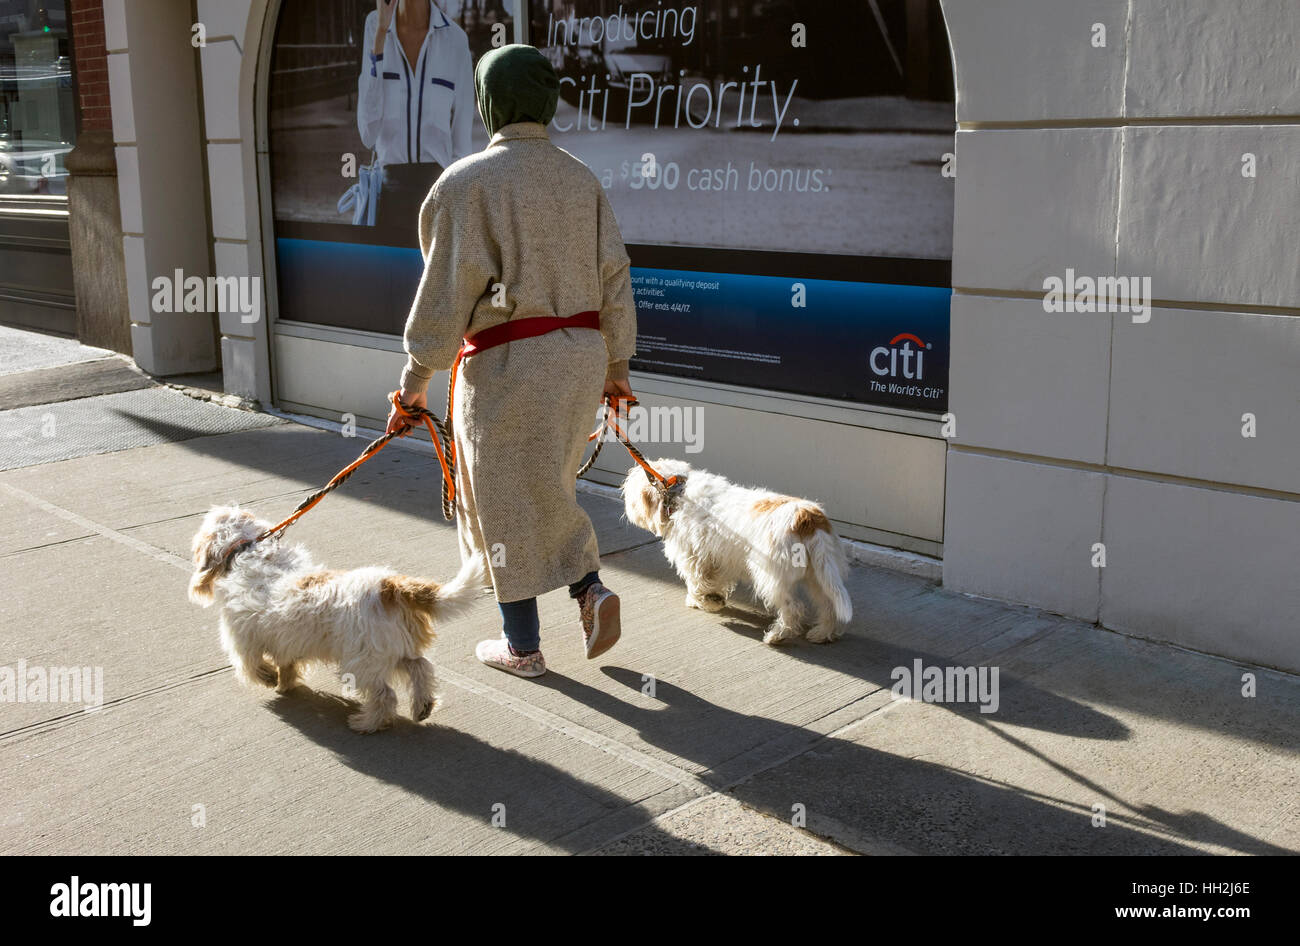 Matching Havanese dogs being walked by a woman in New York City - Stock Image